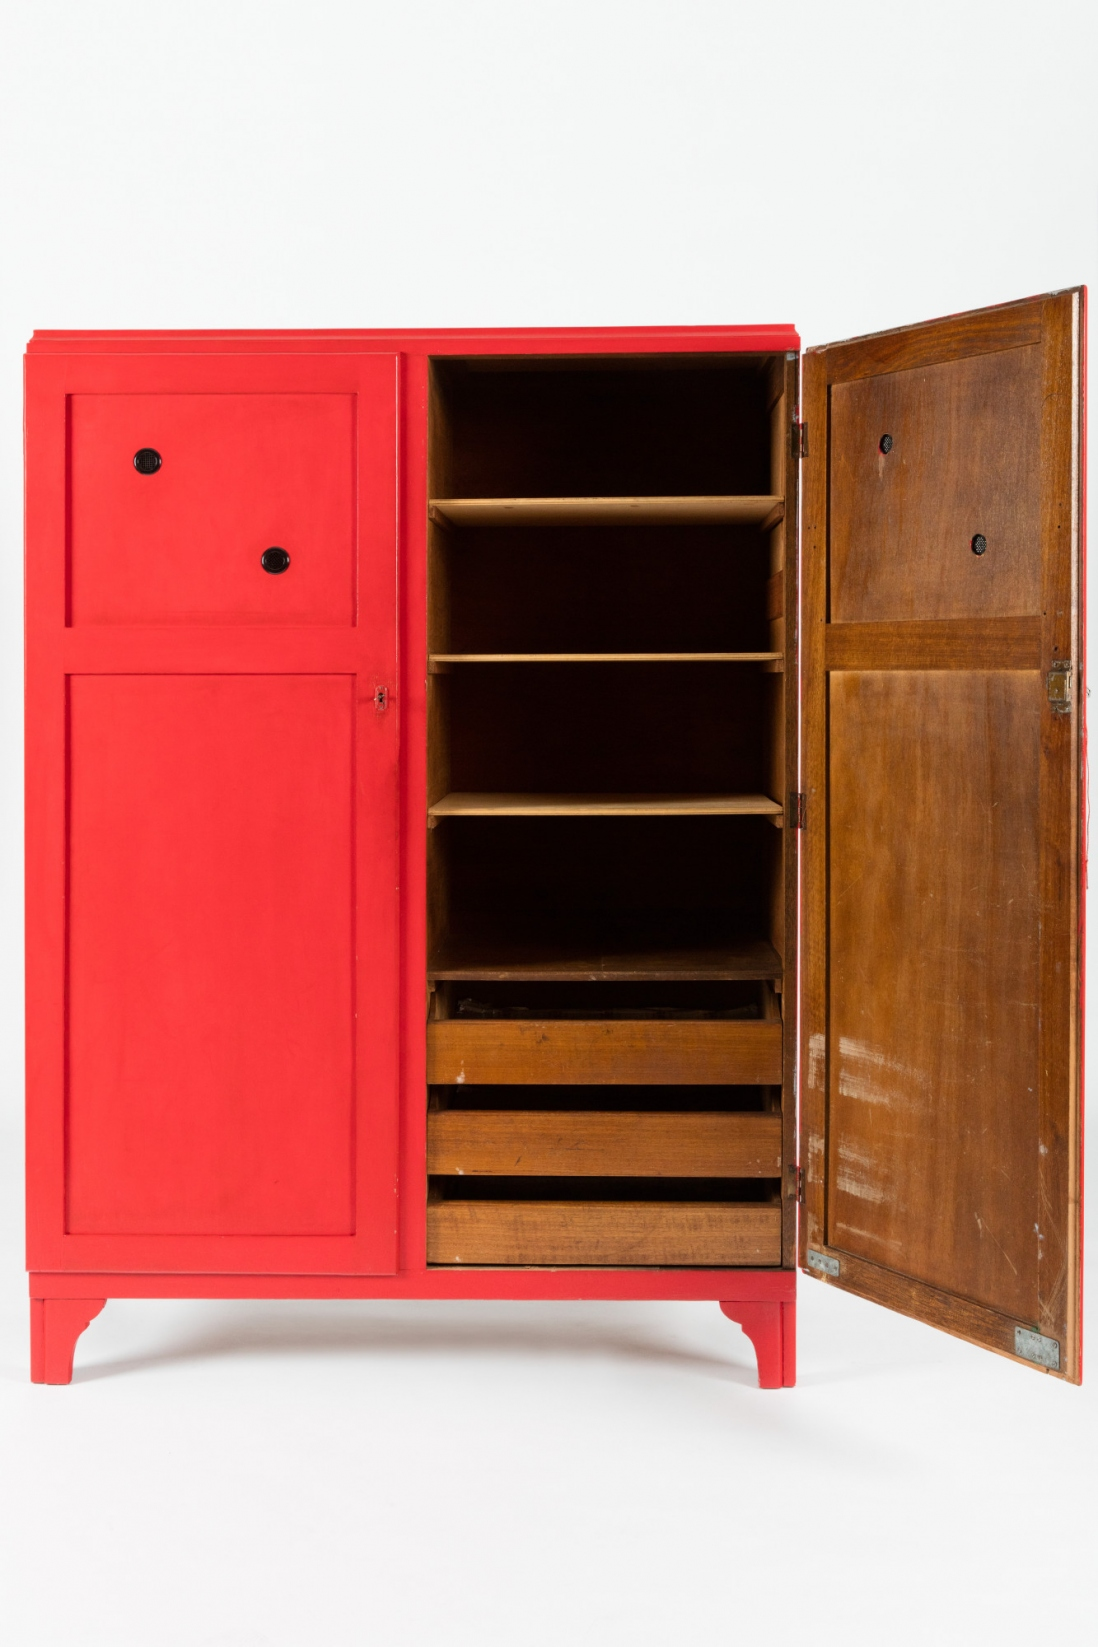 Red timber cupboard with right hand door open to show shelving.